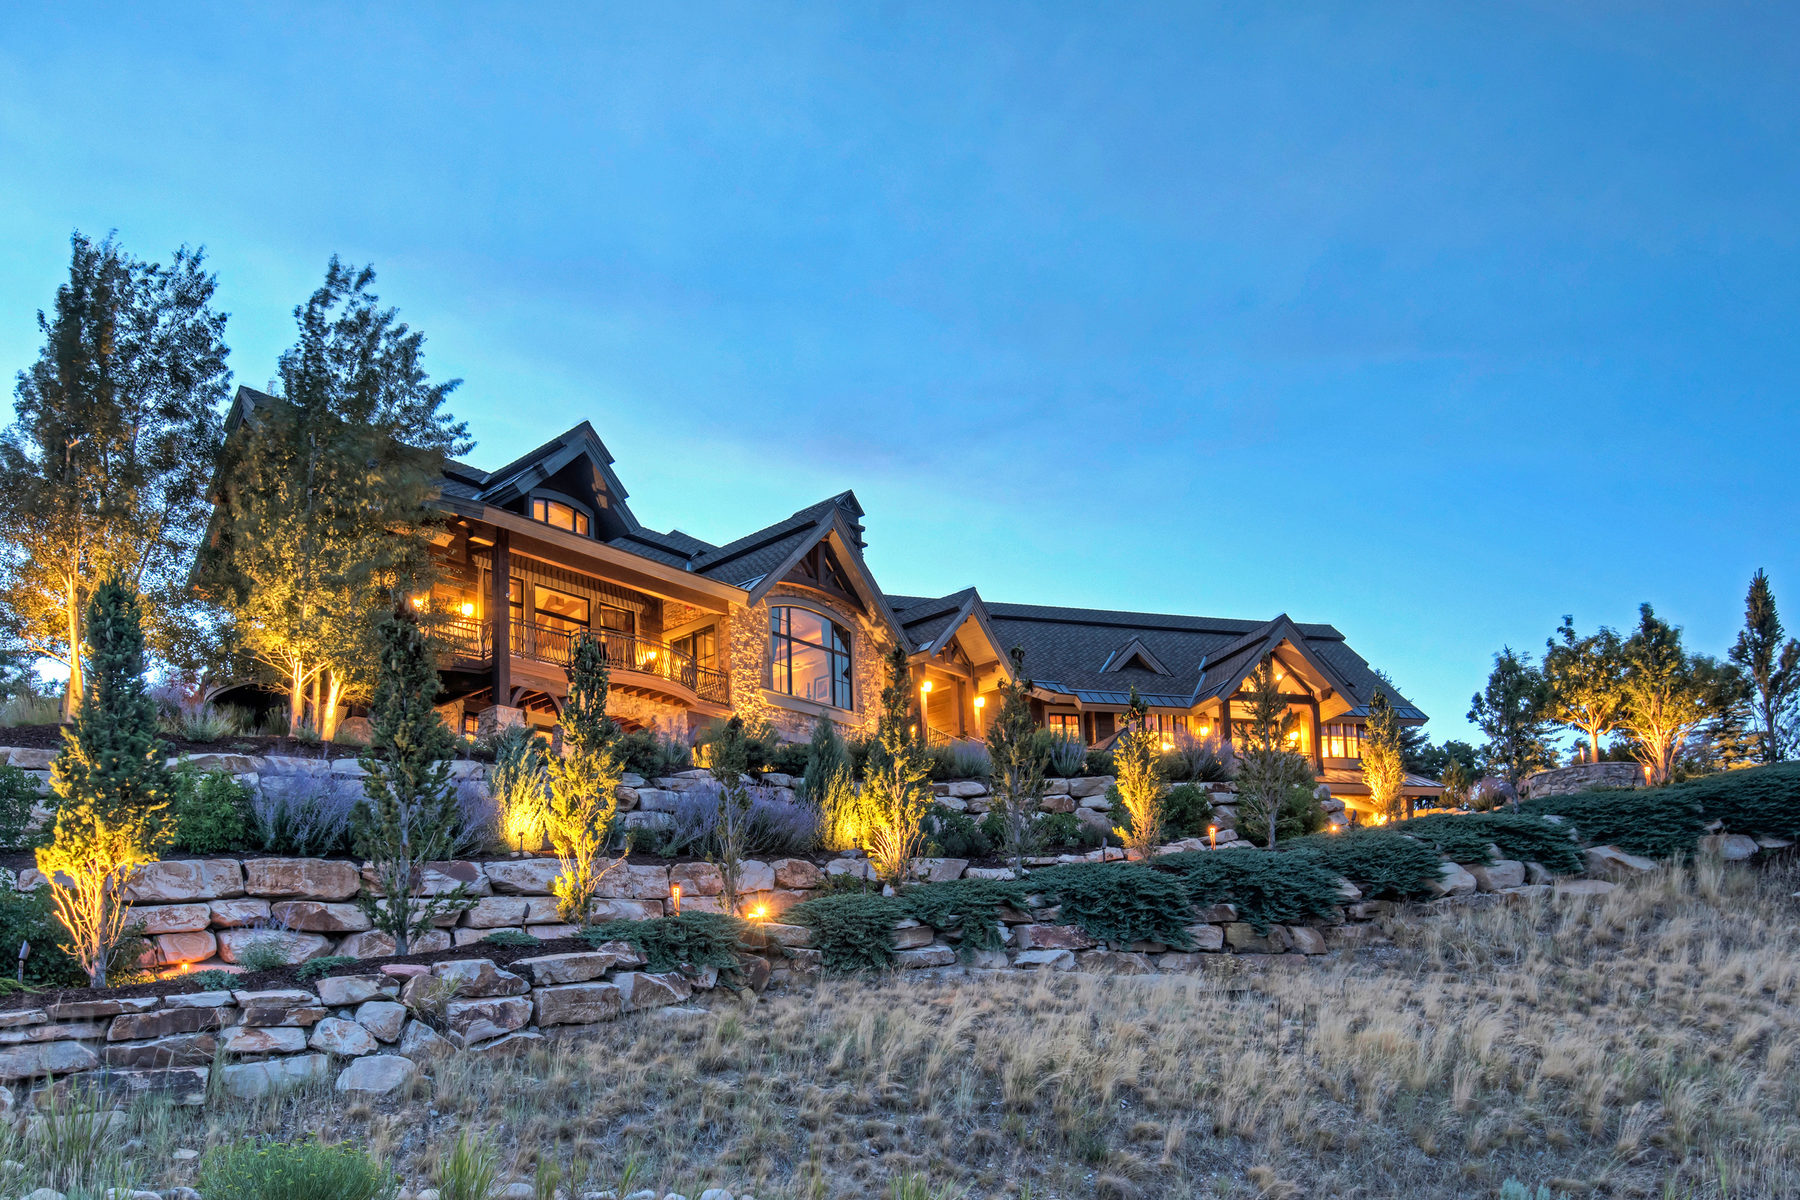 Maison unifamiliale pour l Vente à Great Deer Valley, Park City, Uinta Views! Fabulous Promontory Home! 8053 N Sunrise Loop Lot #47 Park City, Utah, 84098 États-Unis